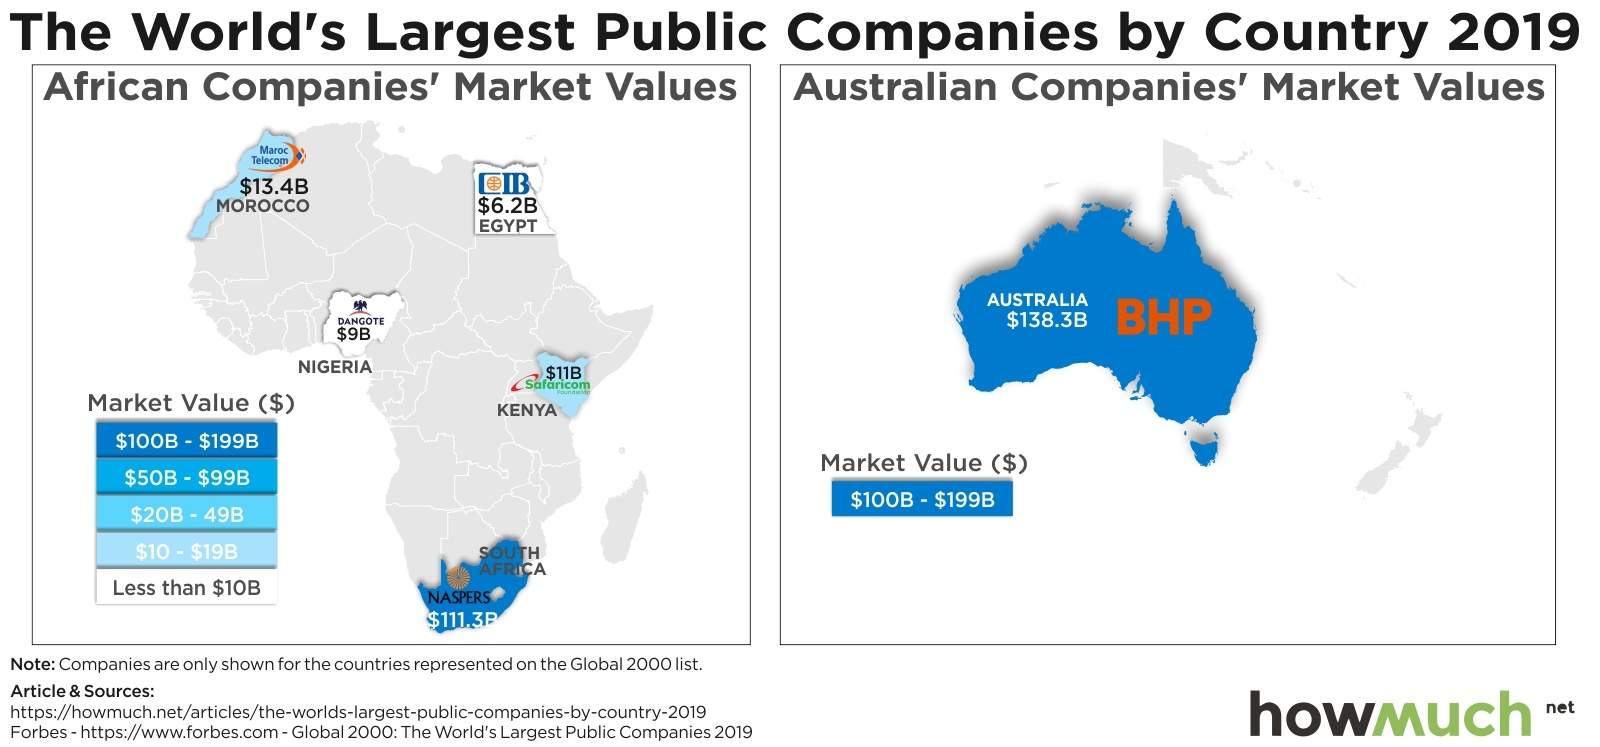 Visualizing the Largest Companies in Africa